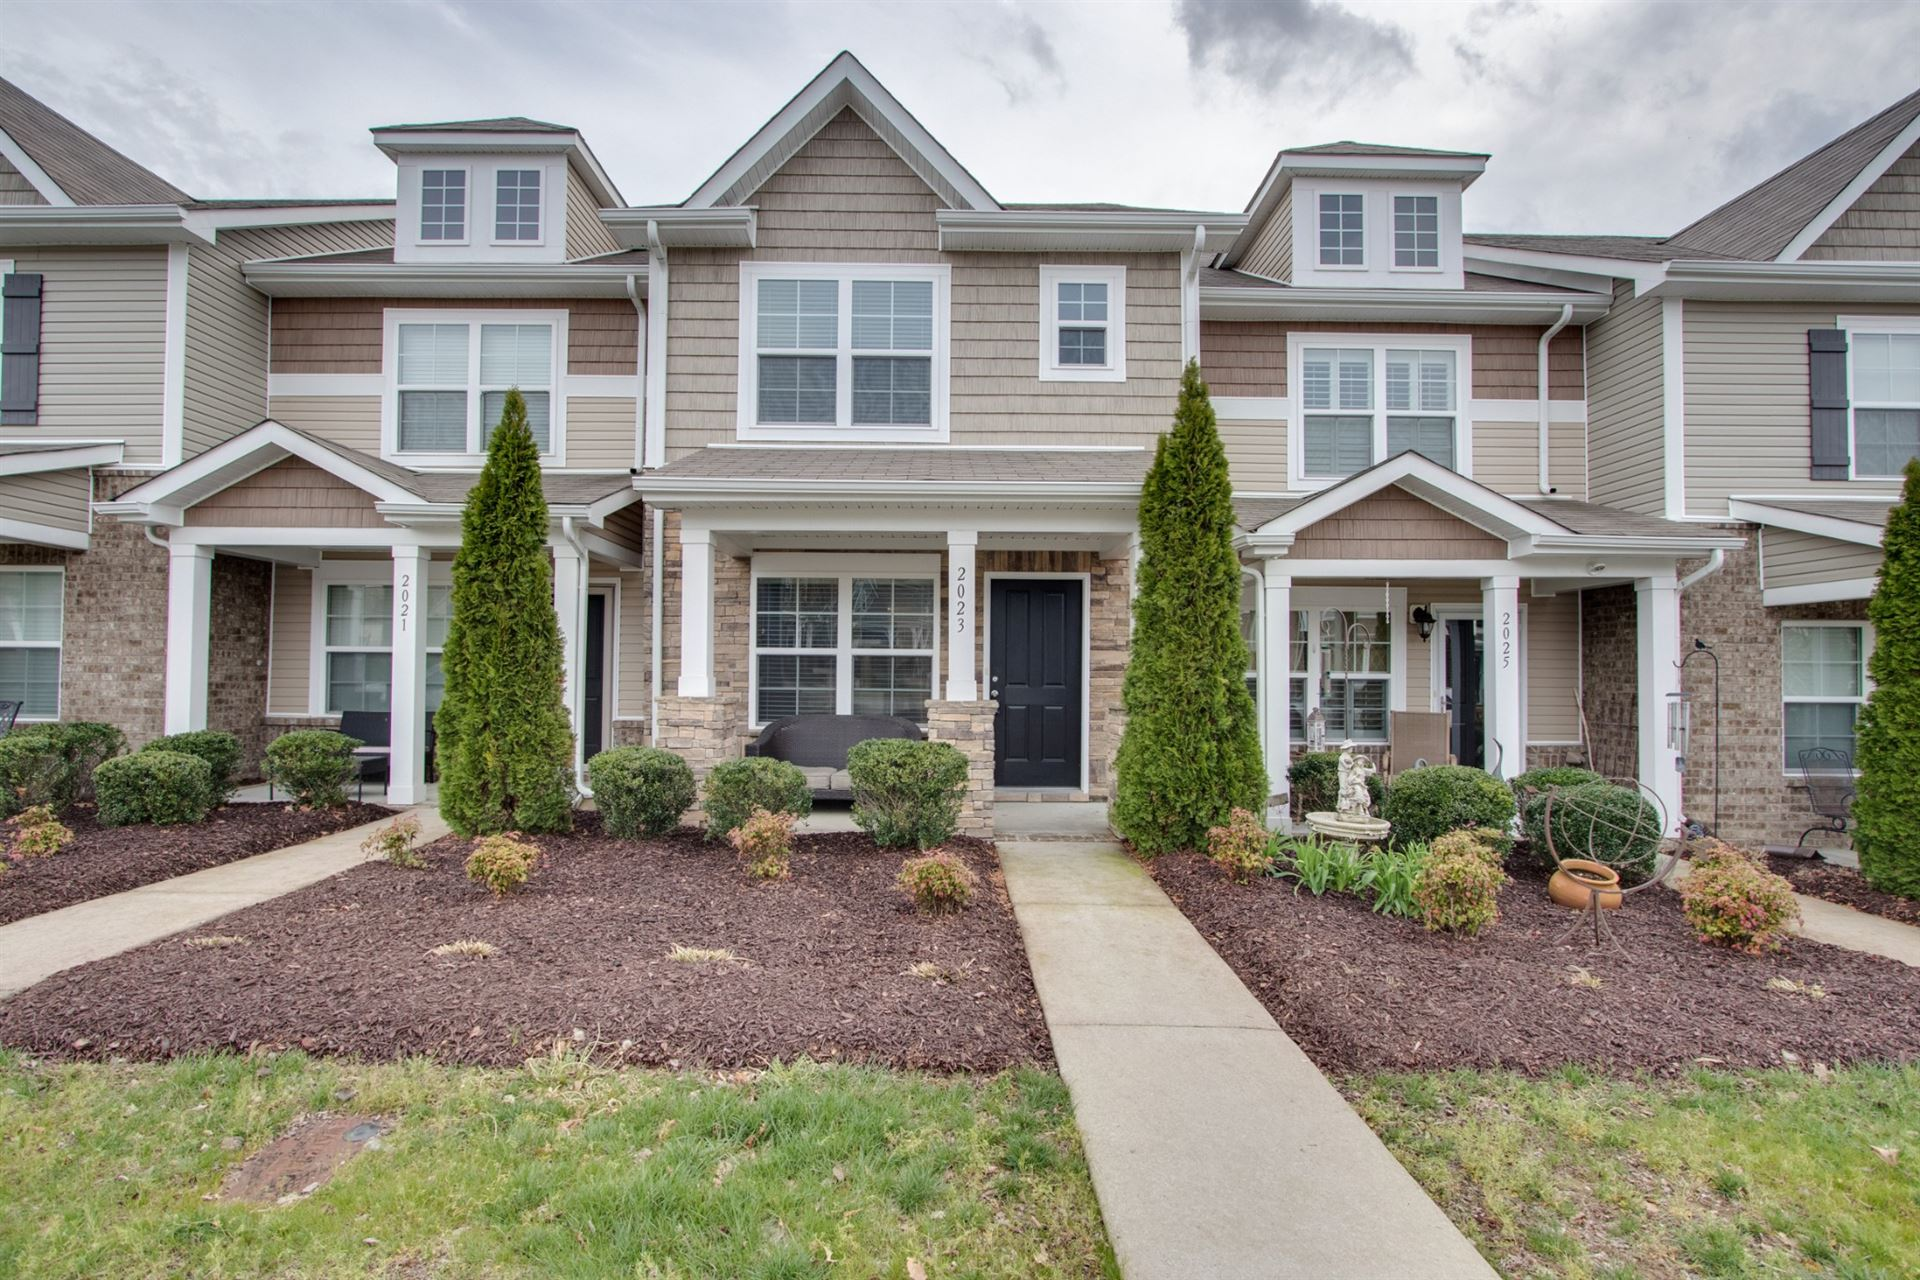 Photo of 2023 Hickory Brook Dr, Hermitage, TN 37076 (MLS # 2133988)